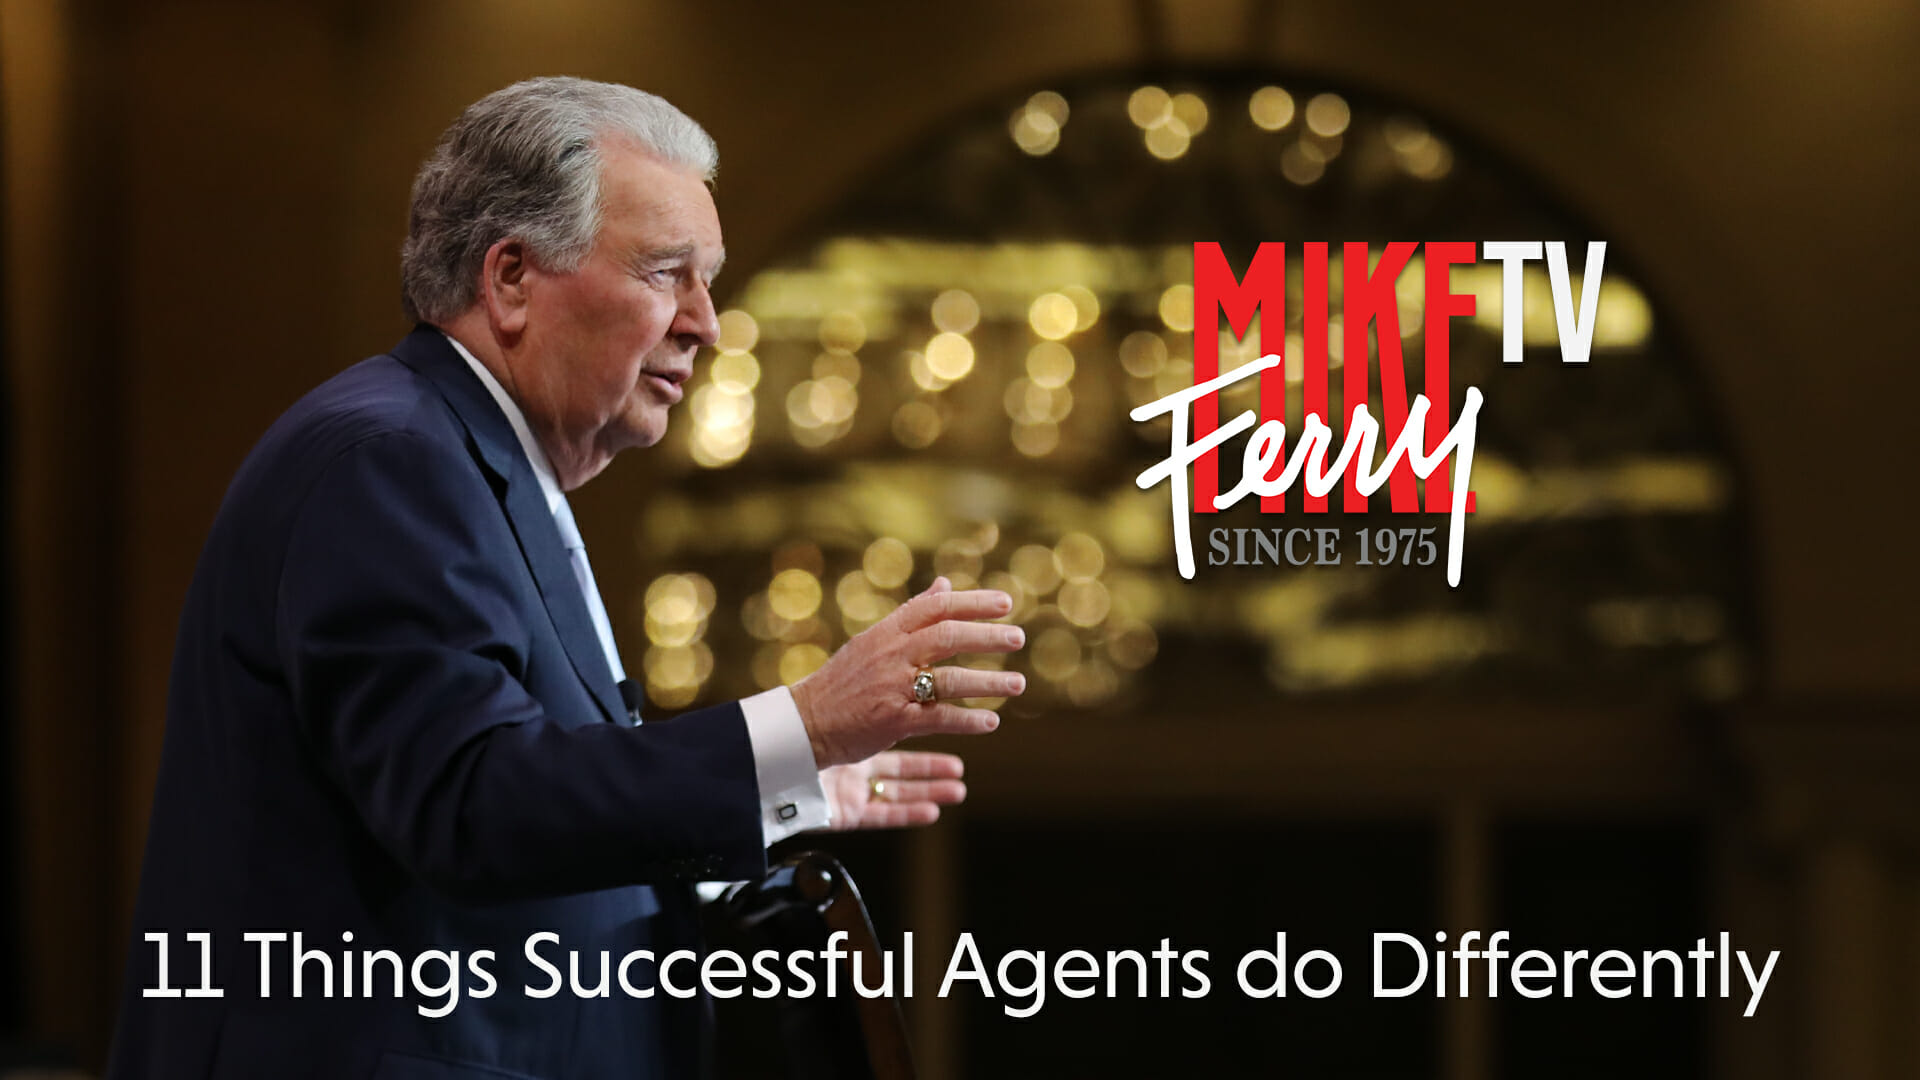 11 Things Successful Agents do Differently